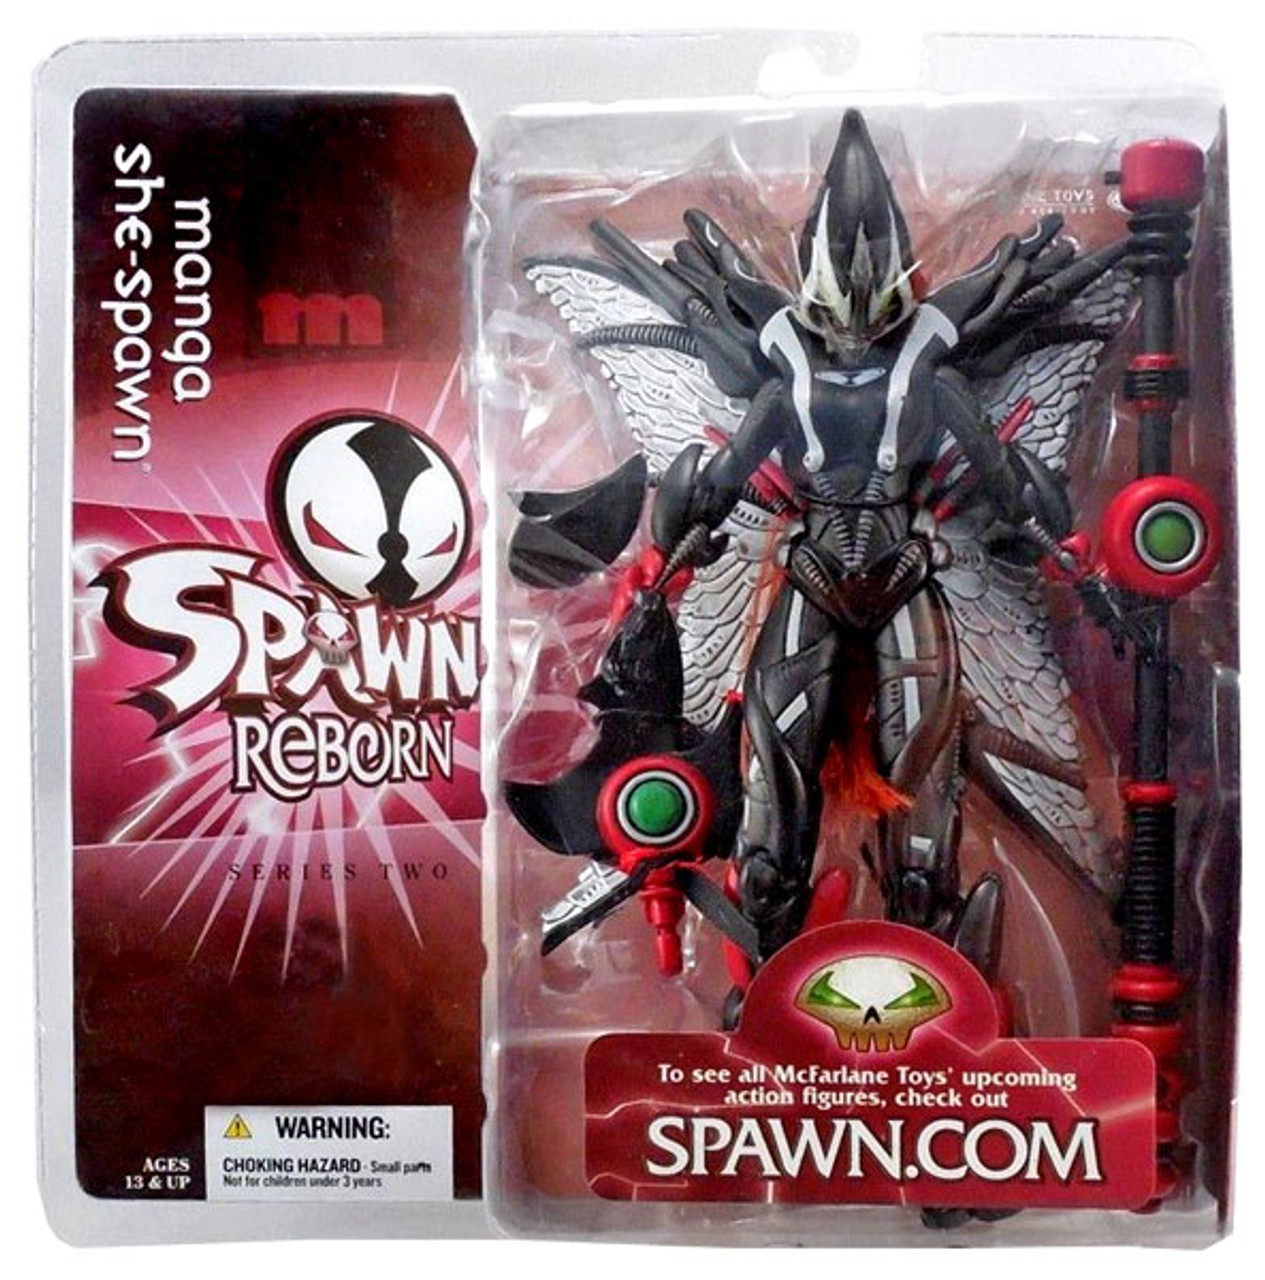 McFarlane Toys Spawn Reborn Series 2 Manga She Spawn Action Figure